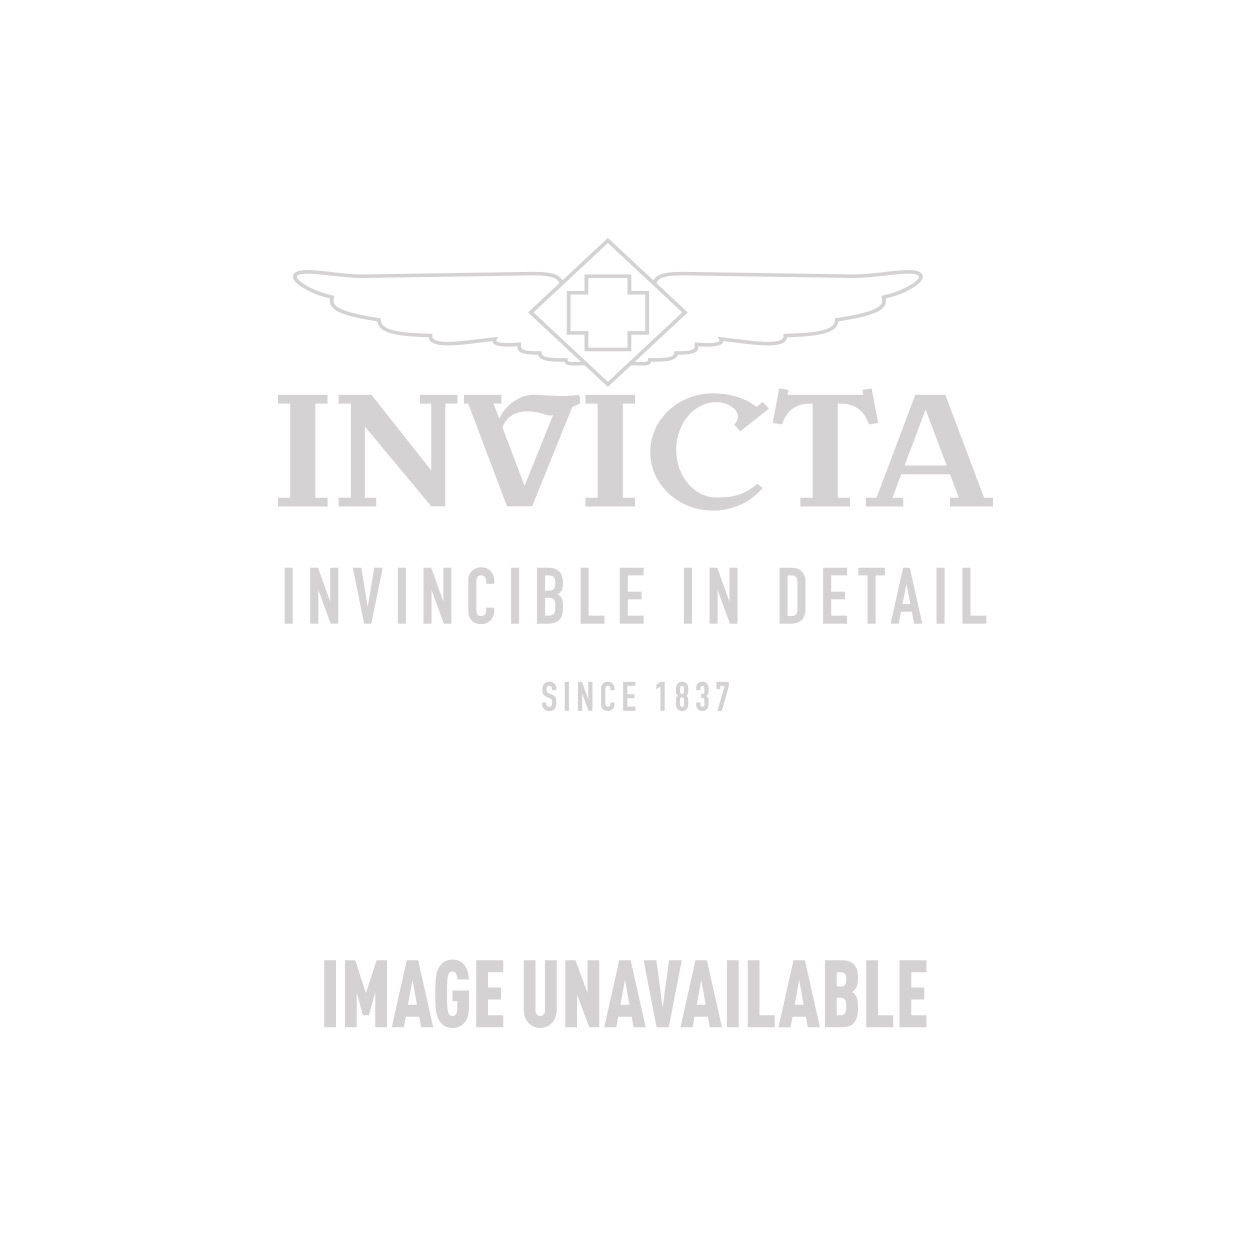 Invicta 1 Slot  Impact Case - Model DC1MIRROR